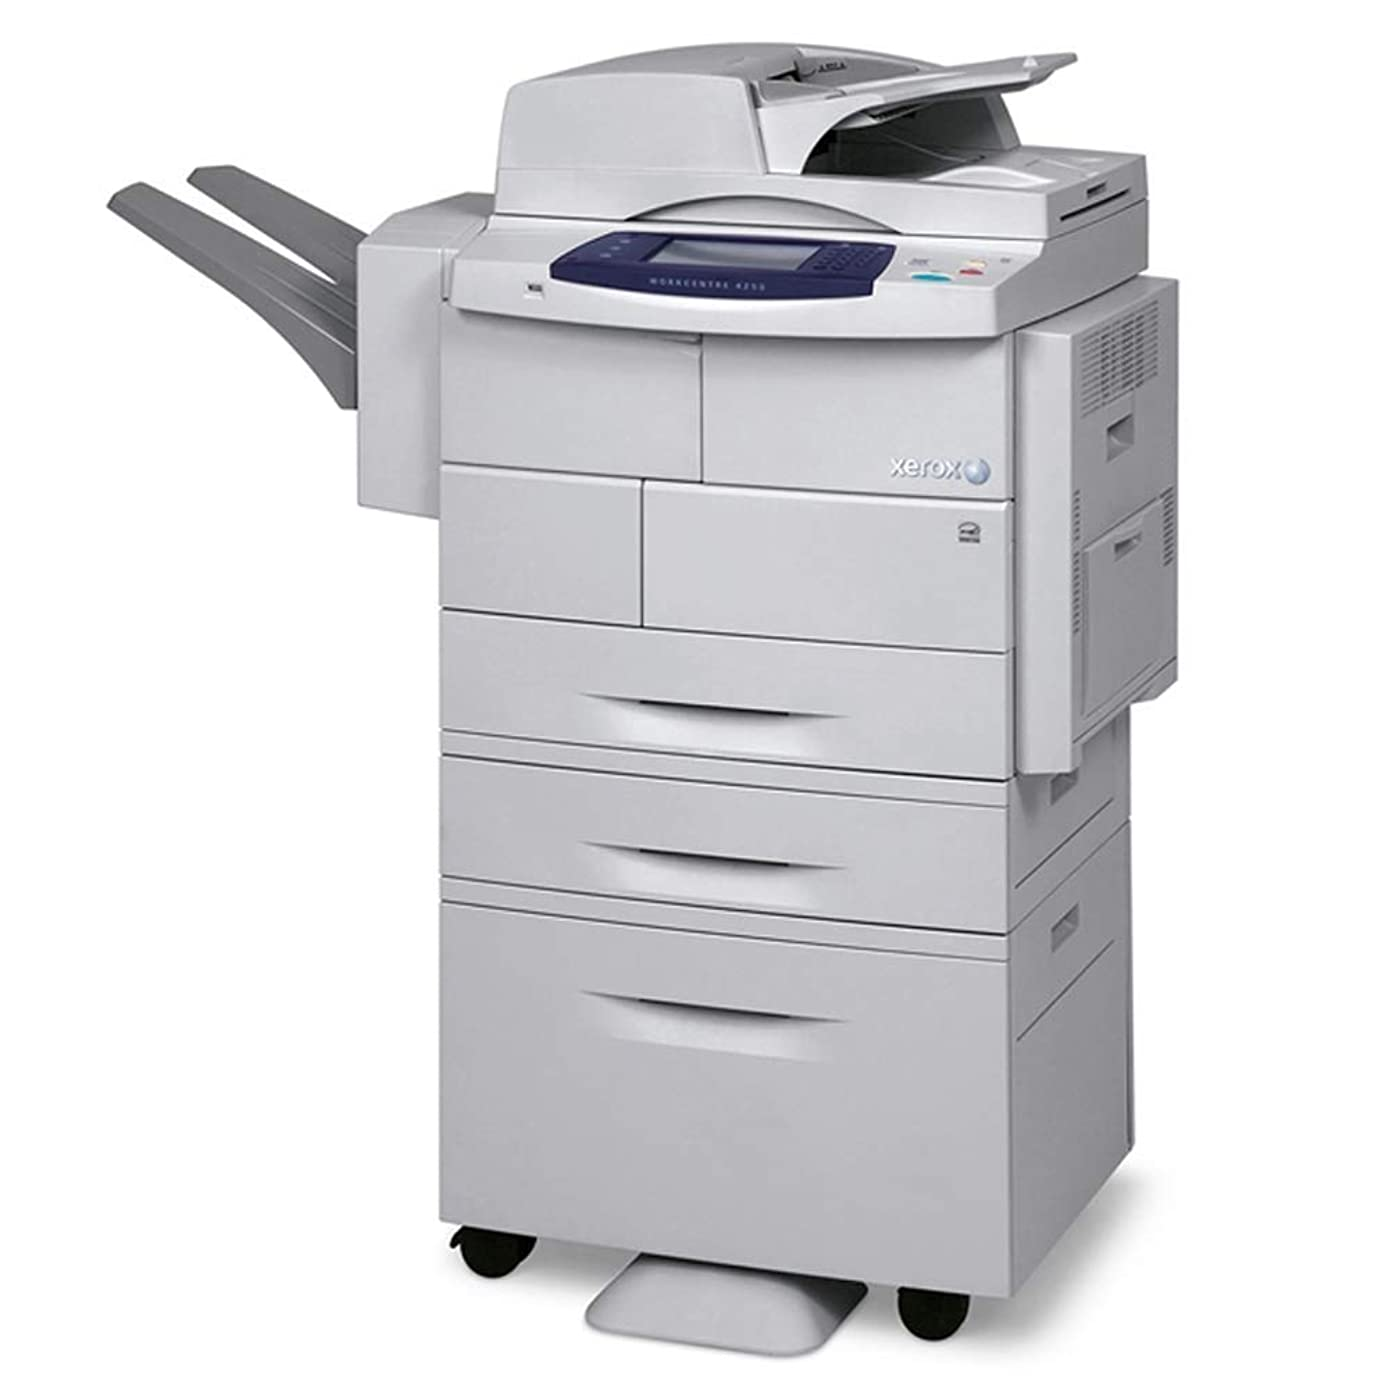 Used Xerox WorkCentre 4250XF Mono MFP Printer Copier Scanner with Finisher 45 PPM (Renewed)